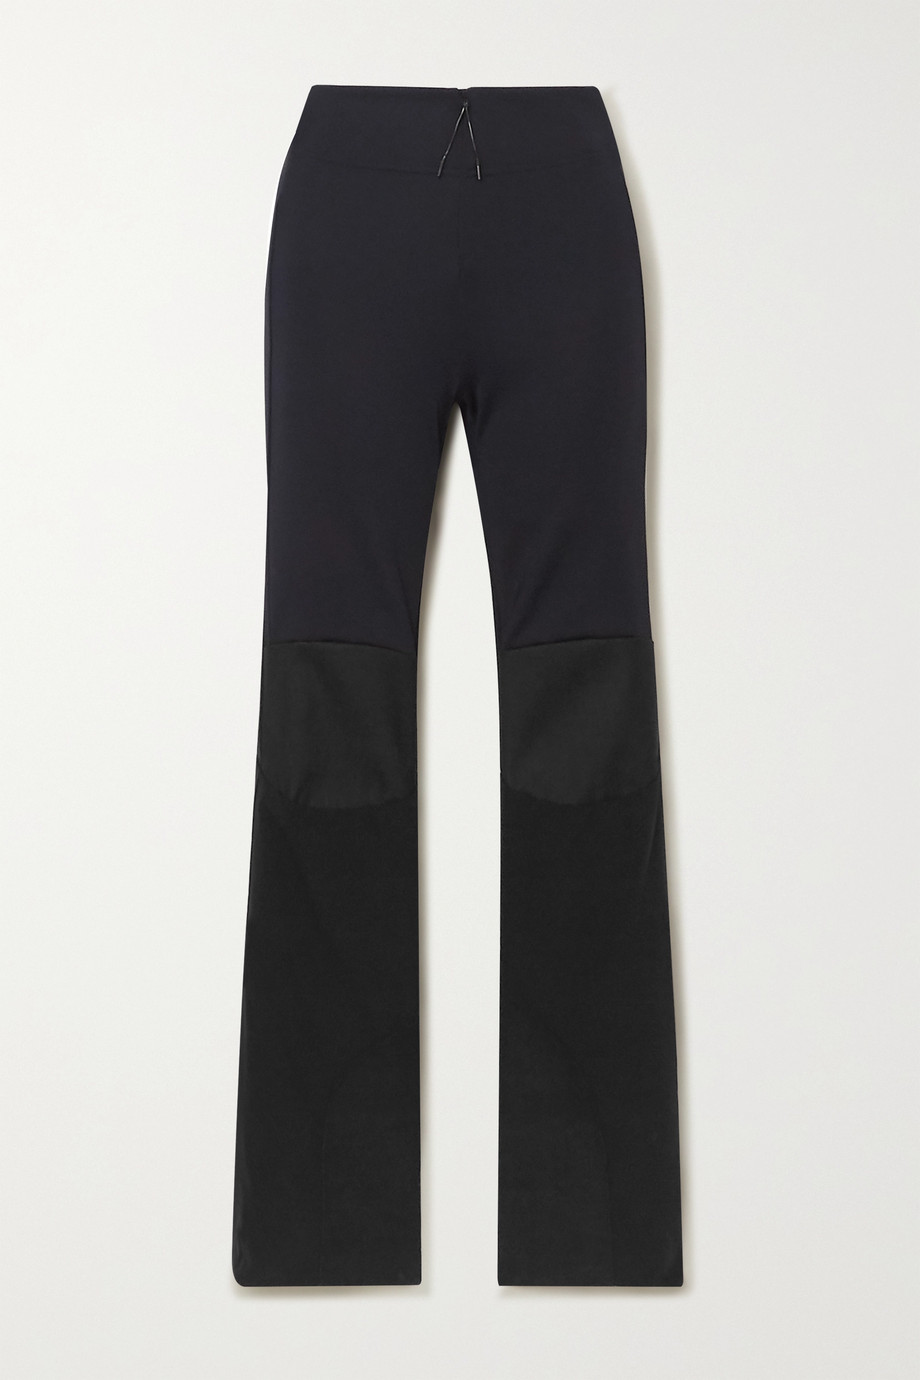 IENKI IENKI Flared ski pants